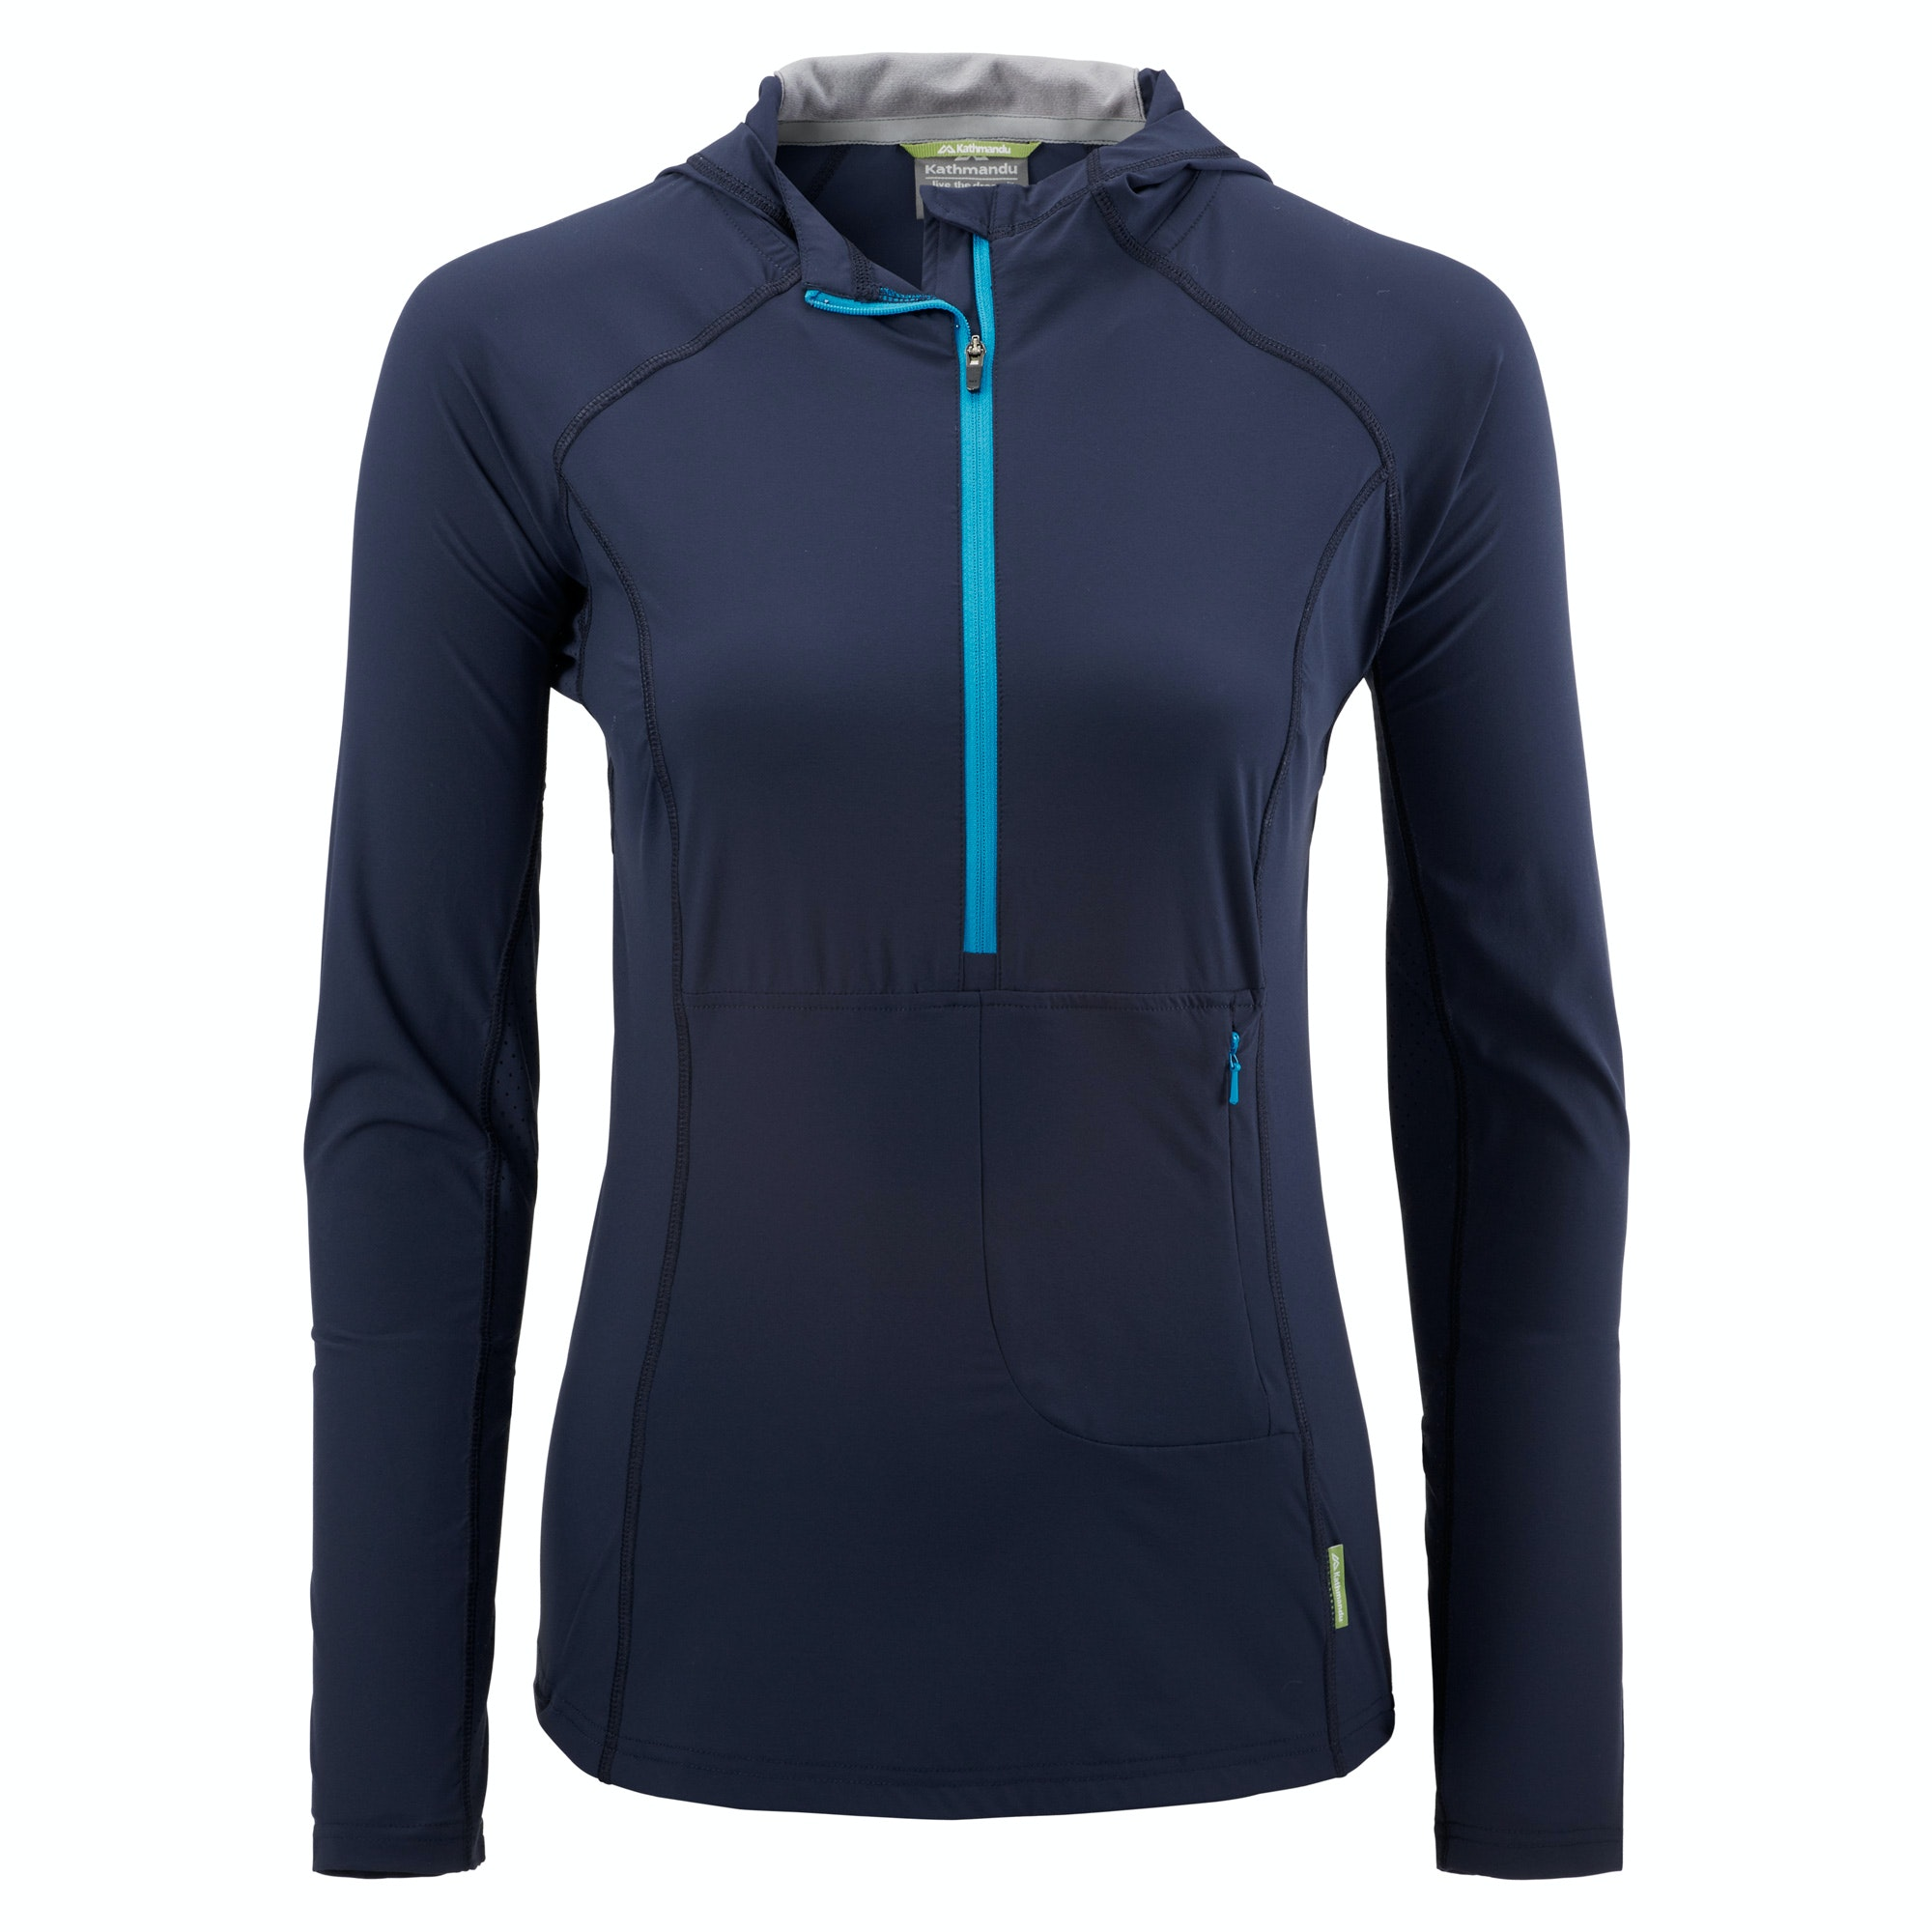 View more of the Flinders Women's Hiking Shirt